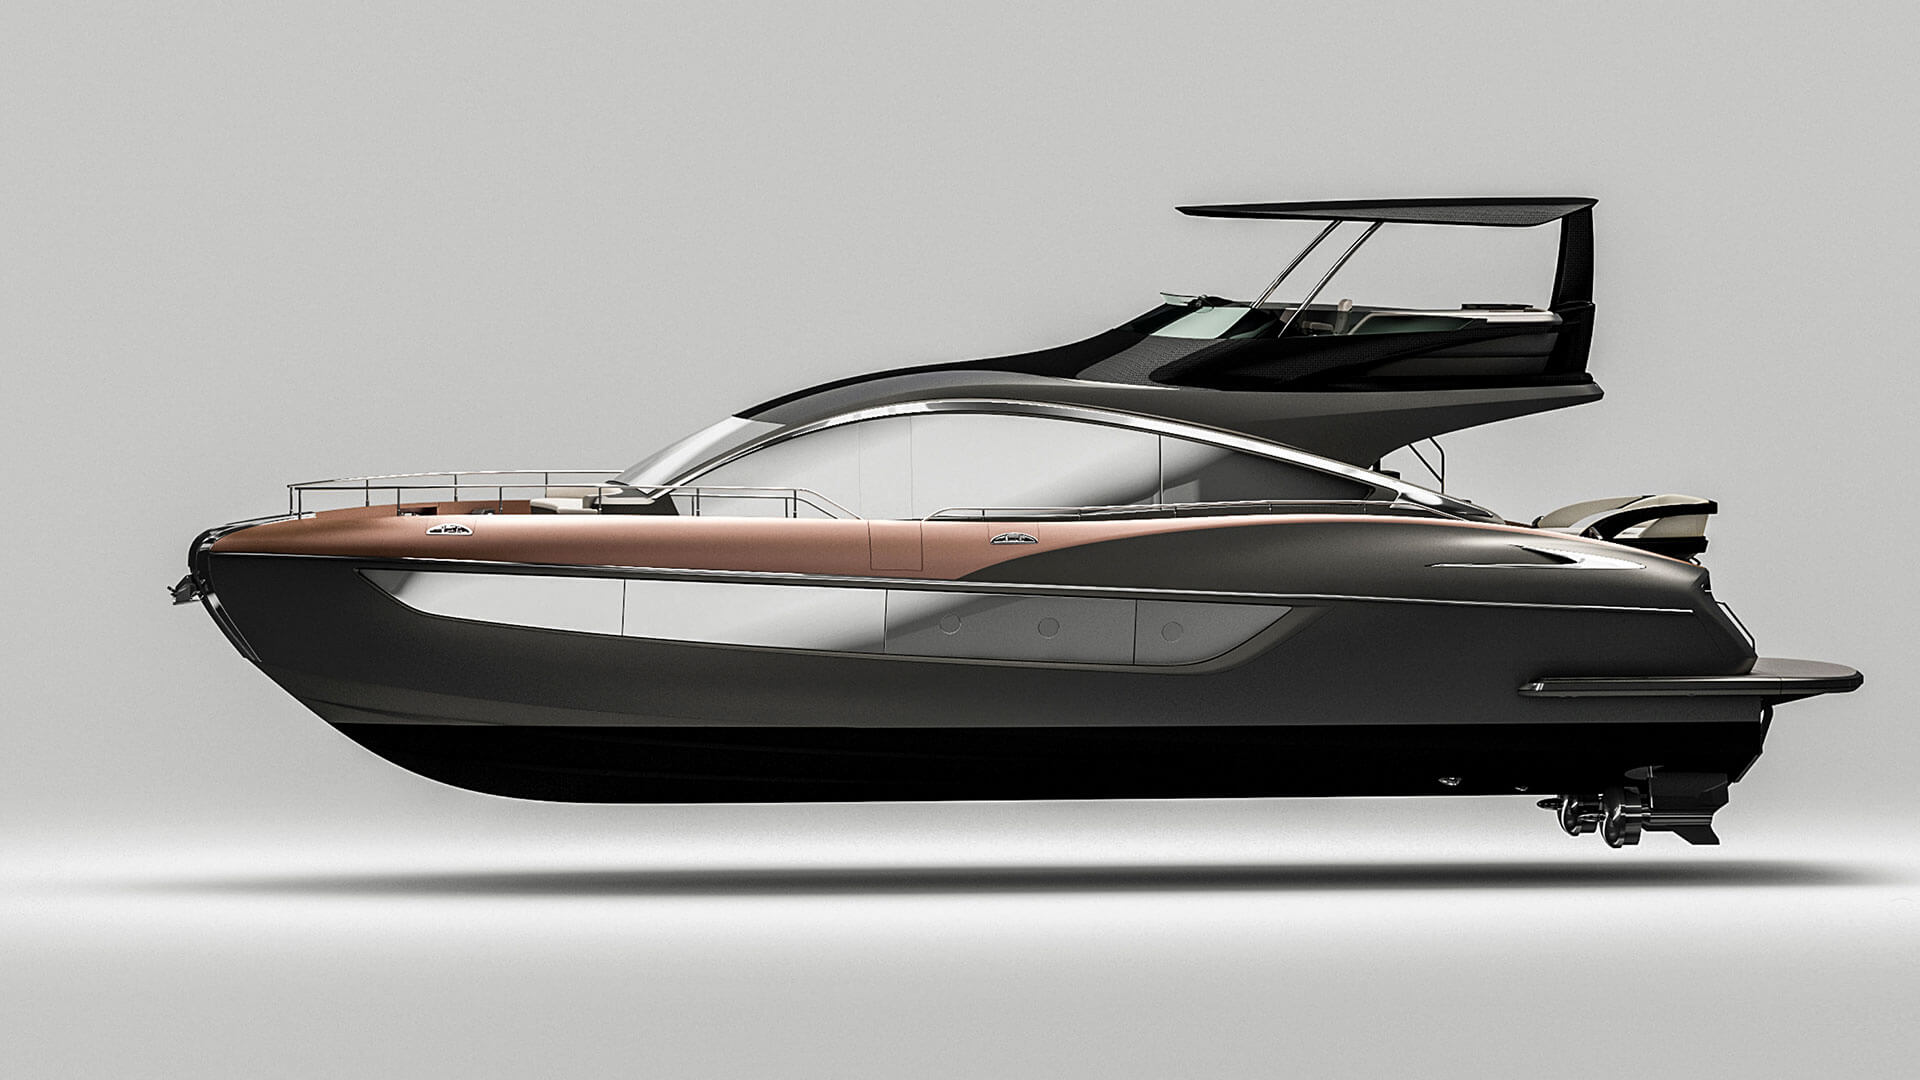 2019 lexus ly 650 luxury yacht gallery 11